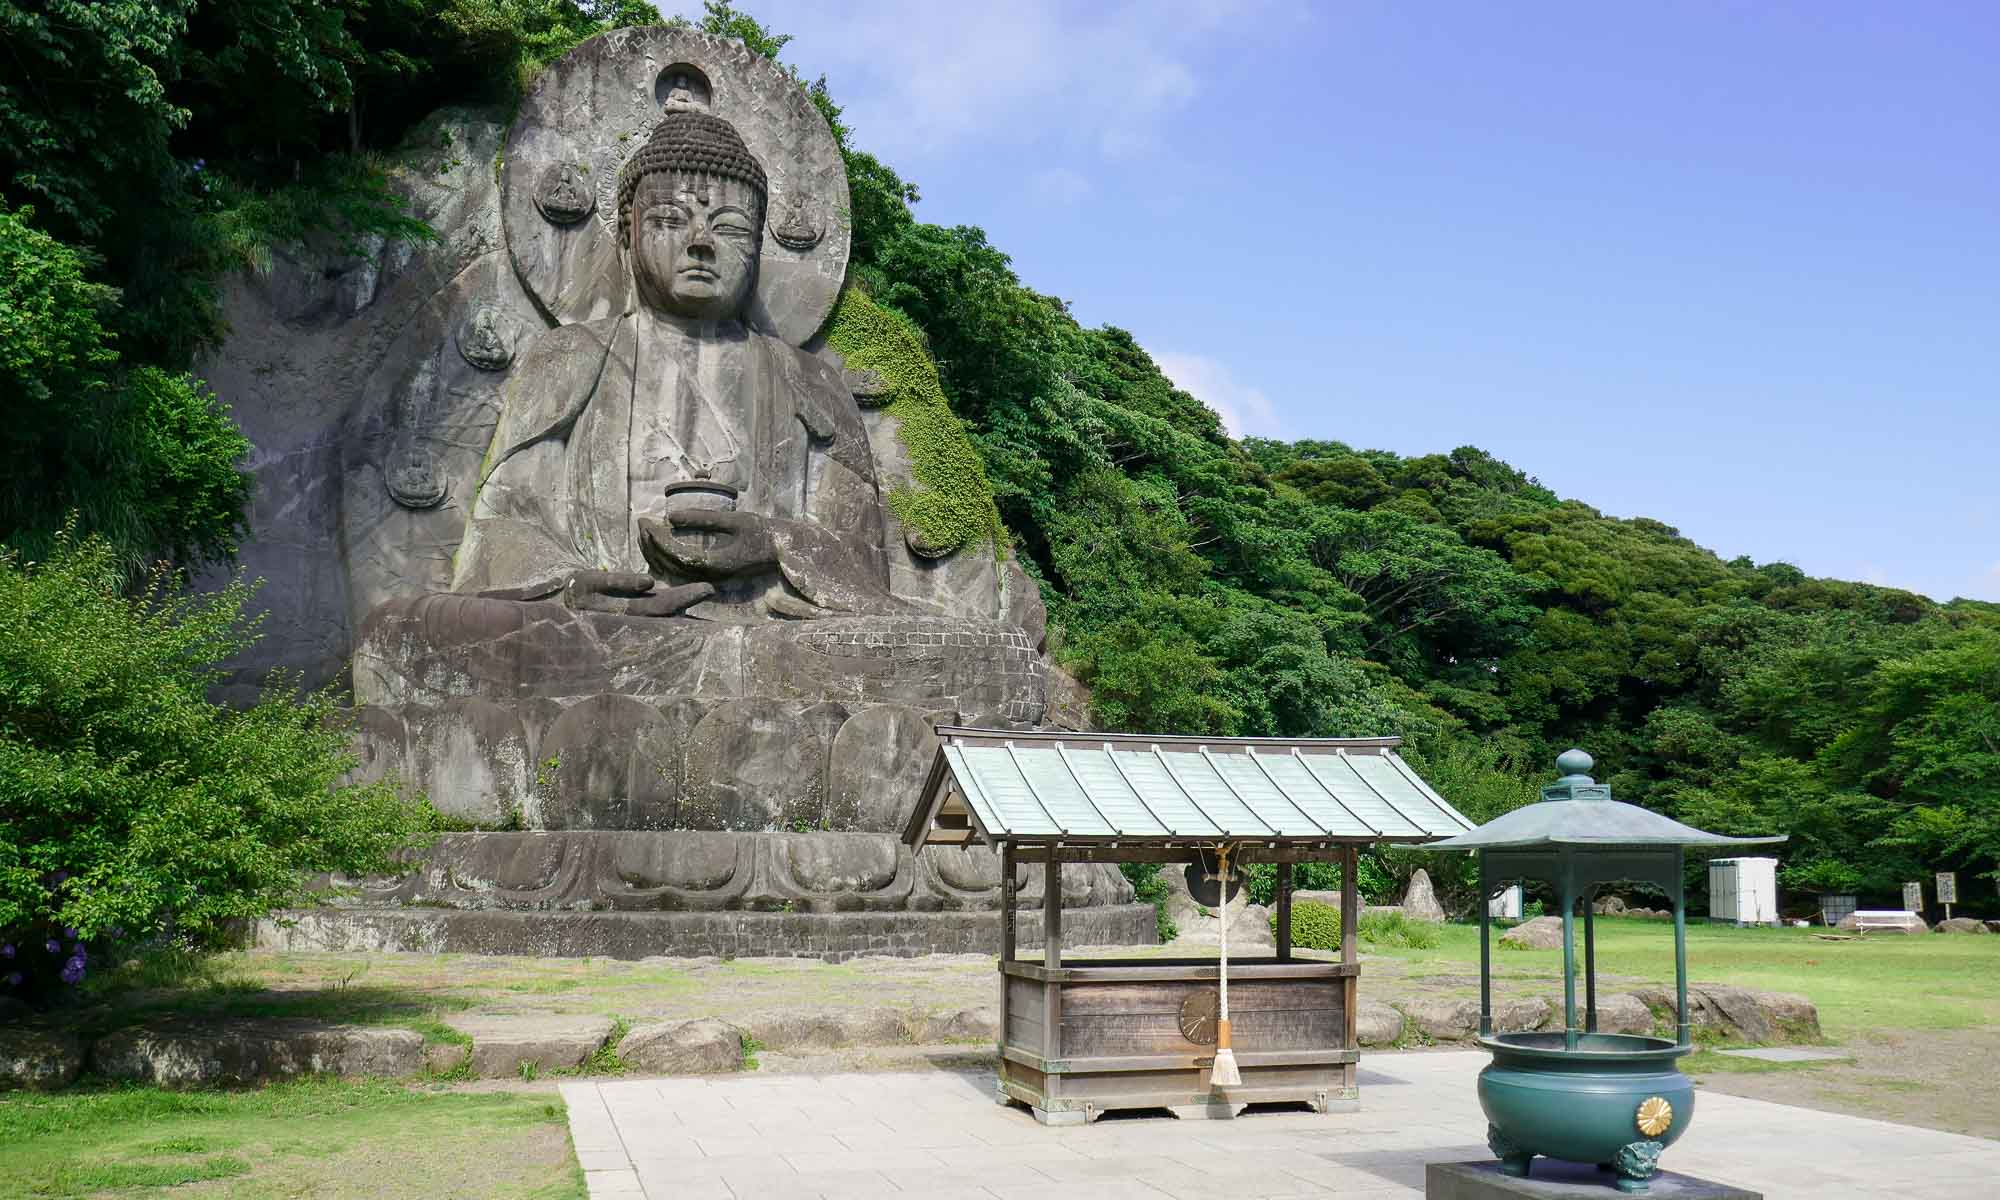 The largest stone-carved Buddha statue